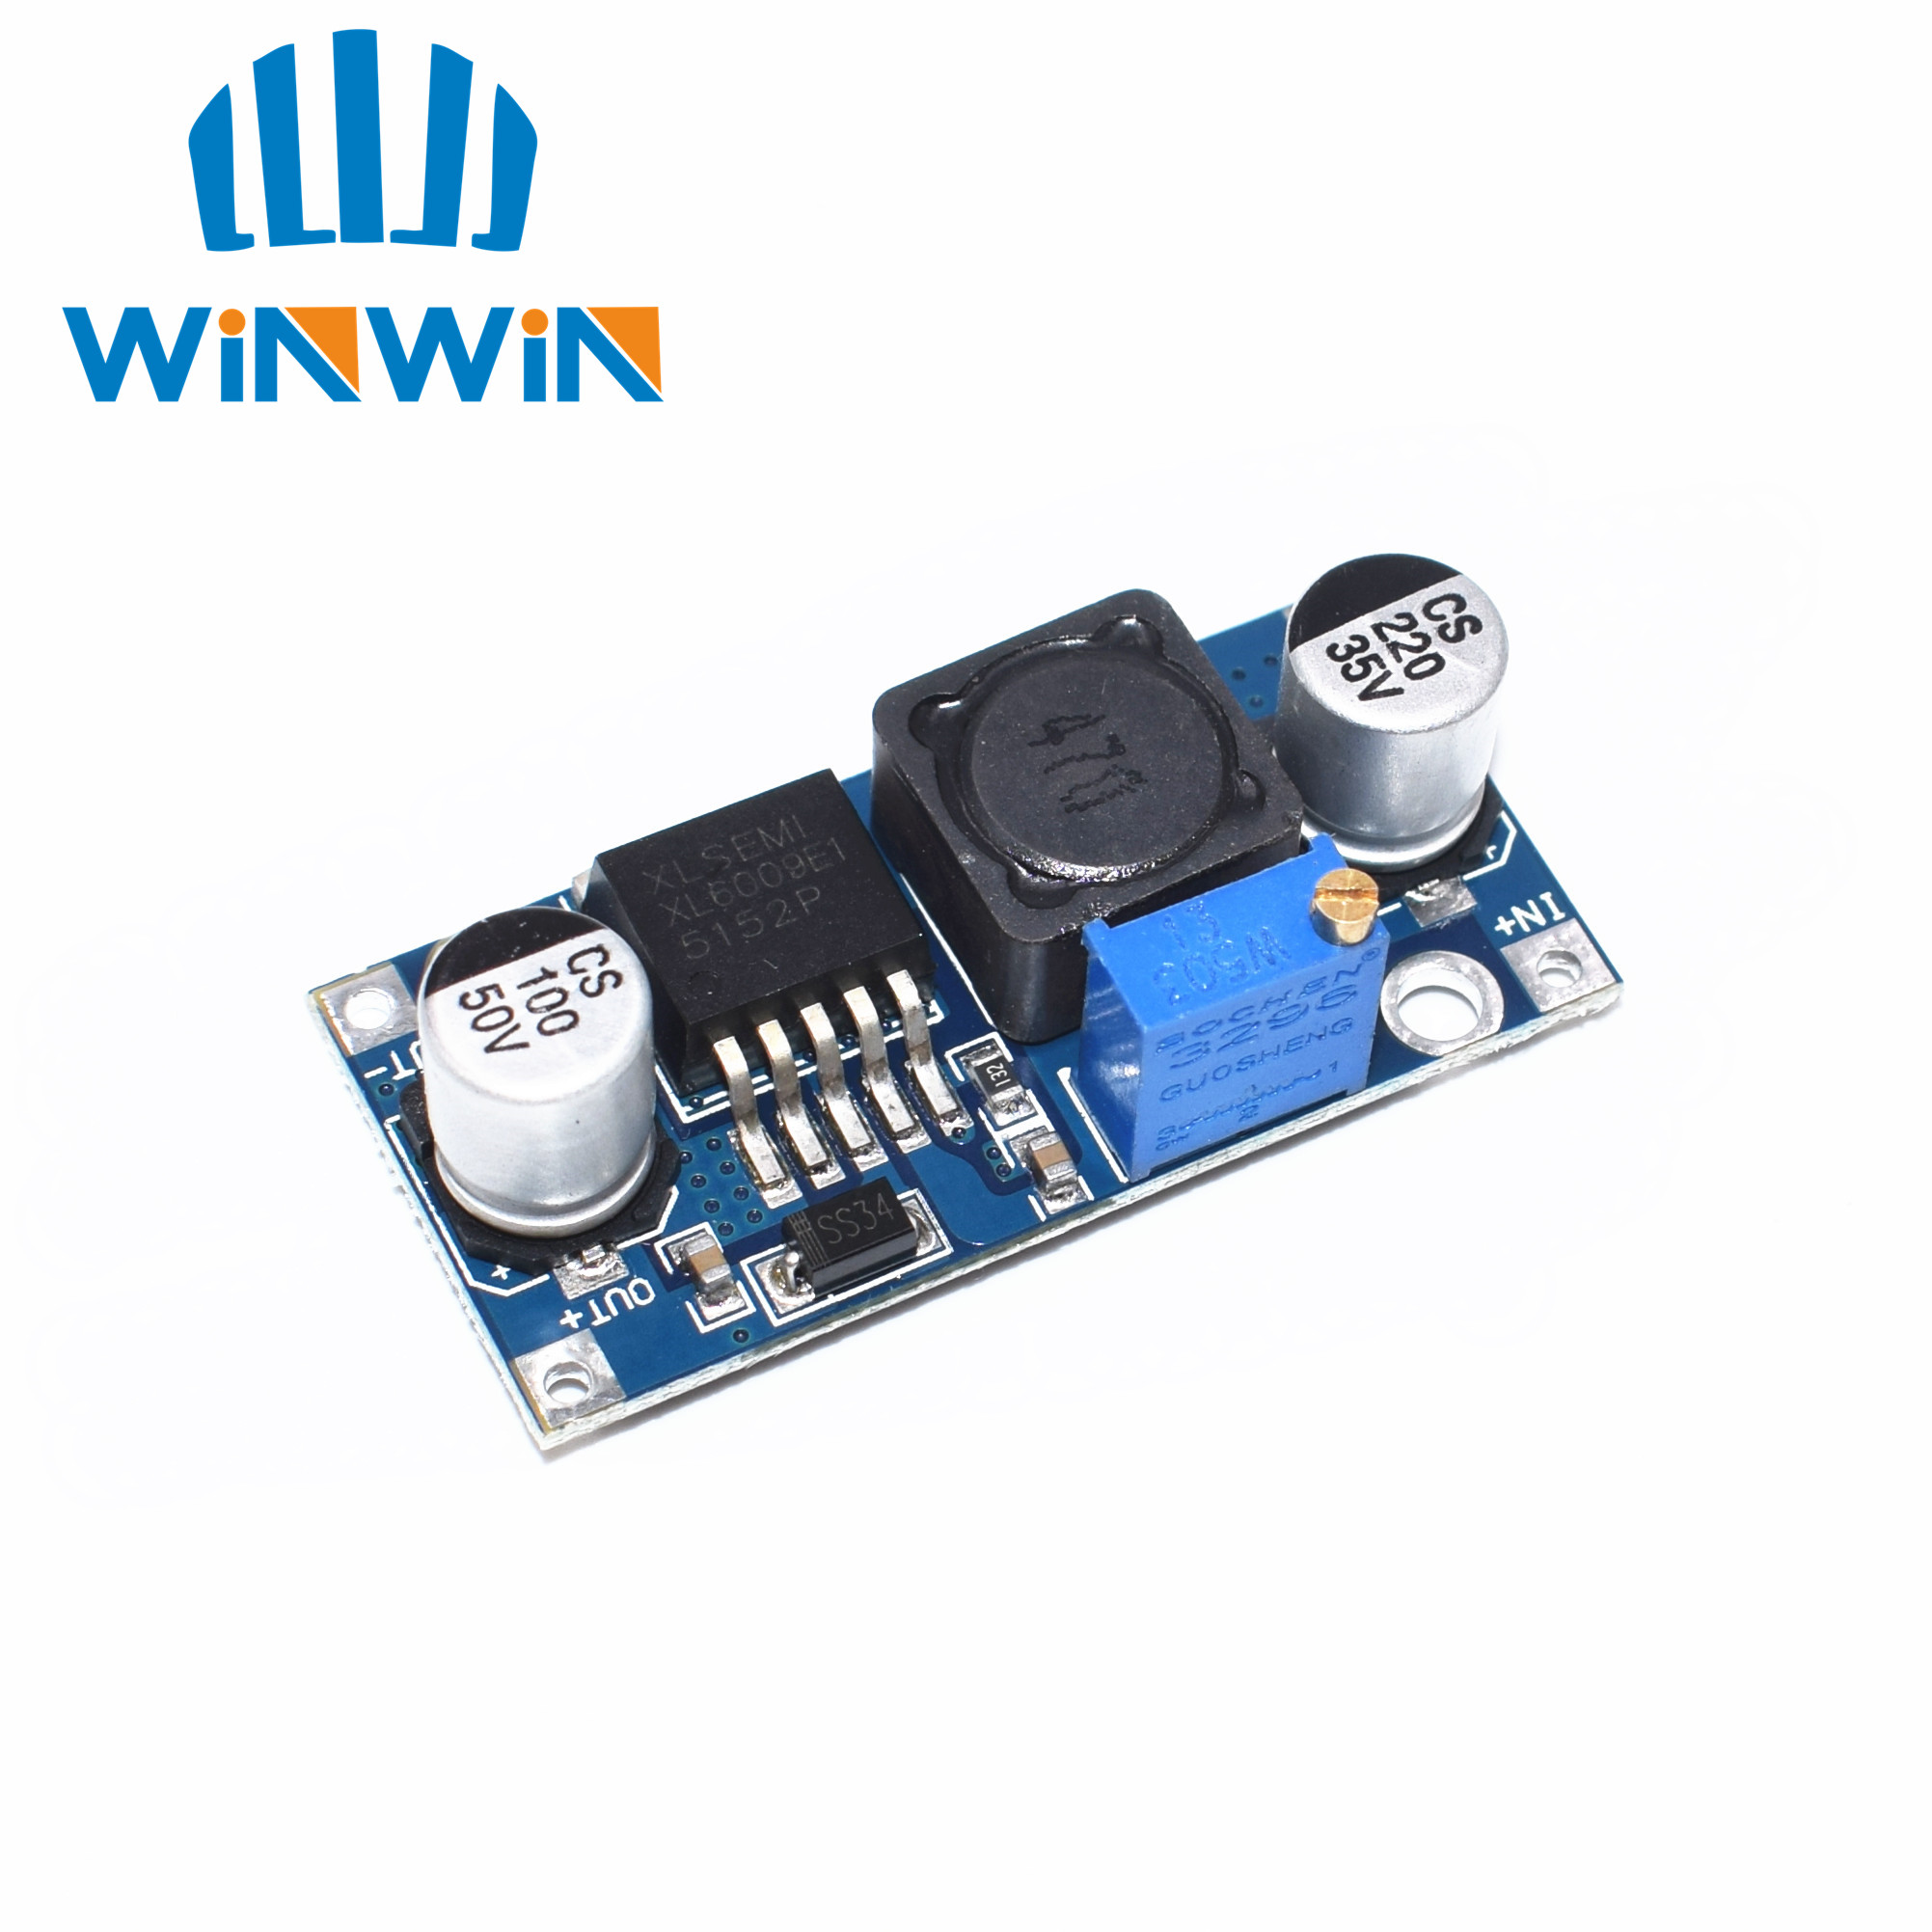 Integrated Circuits Active Components Glorious 5pcs/lot Dc-dc Module Power Supply Module Xl6009 Can Raise Pressure Booster Module Super Lm2577 Dc-dc Booster Step-up Module Suitable For Men And Women Of All Ages In All Seasons